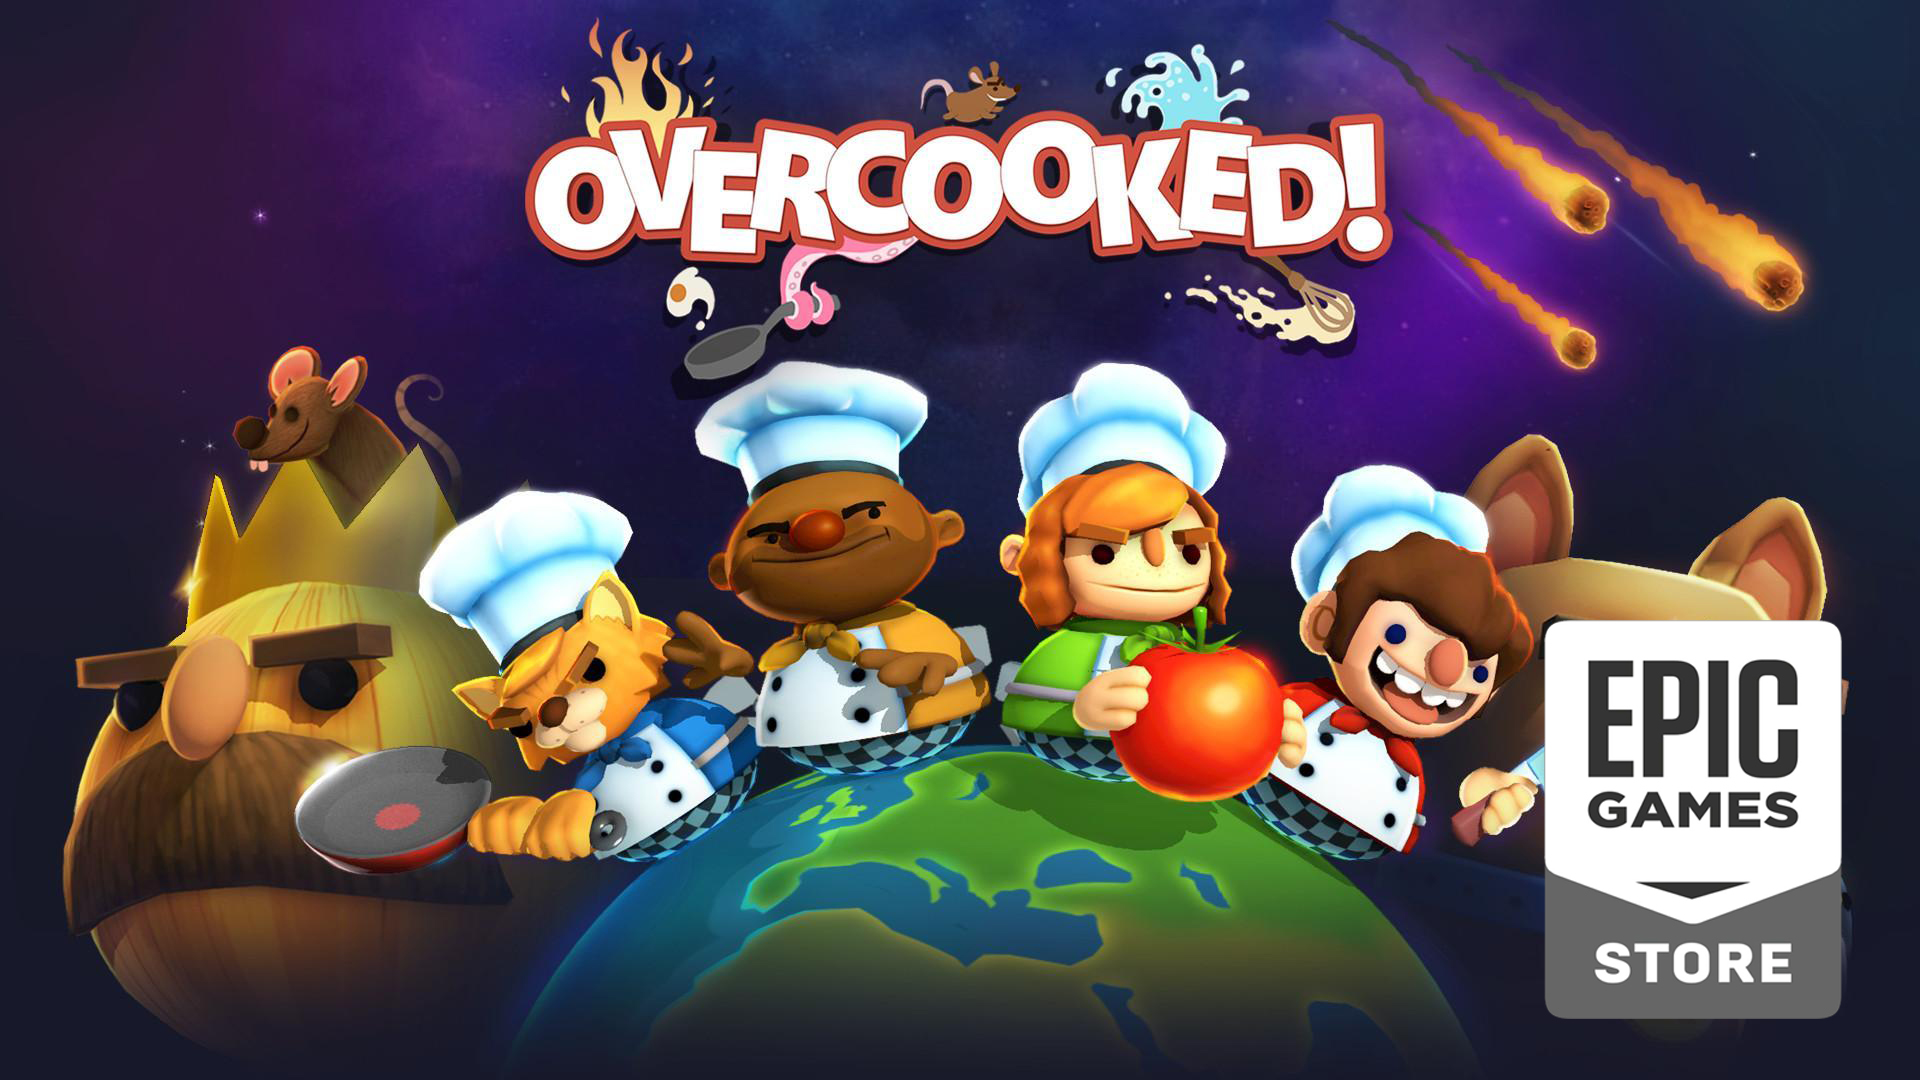 overcooked bedava epic